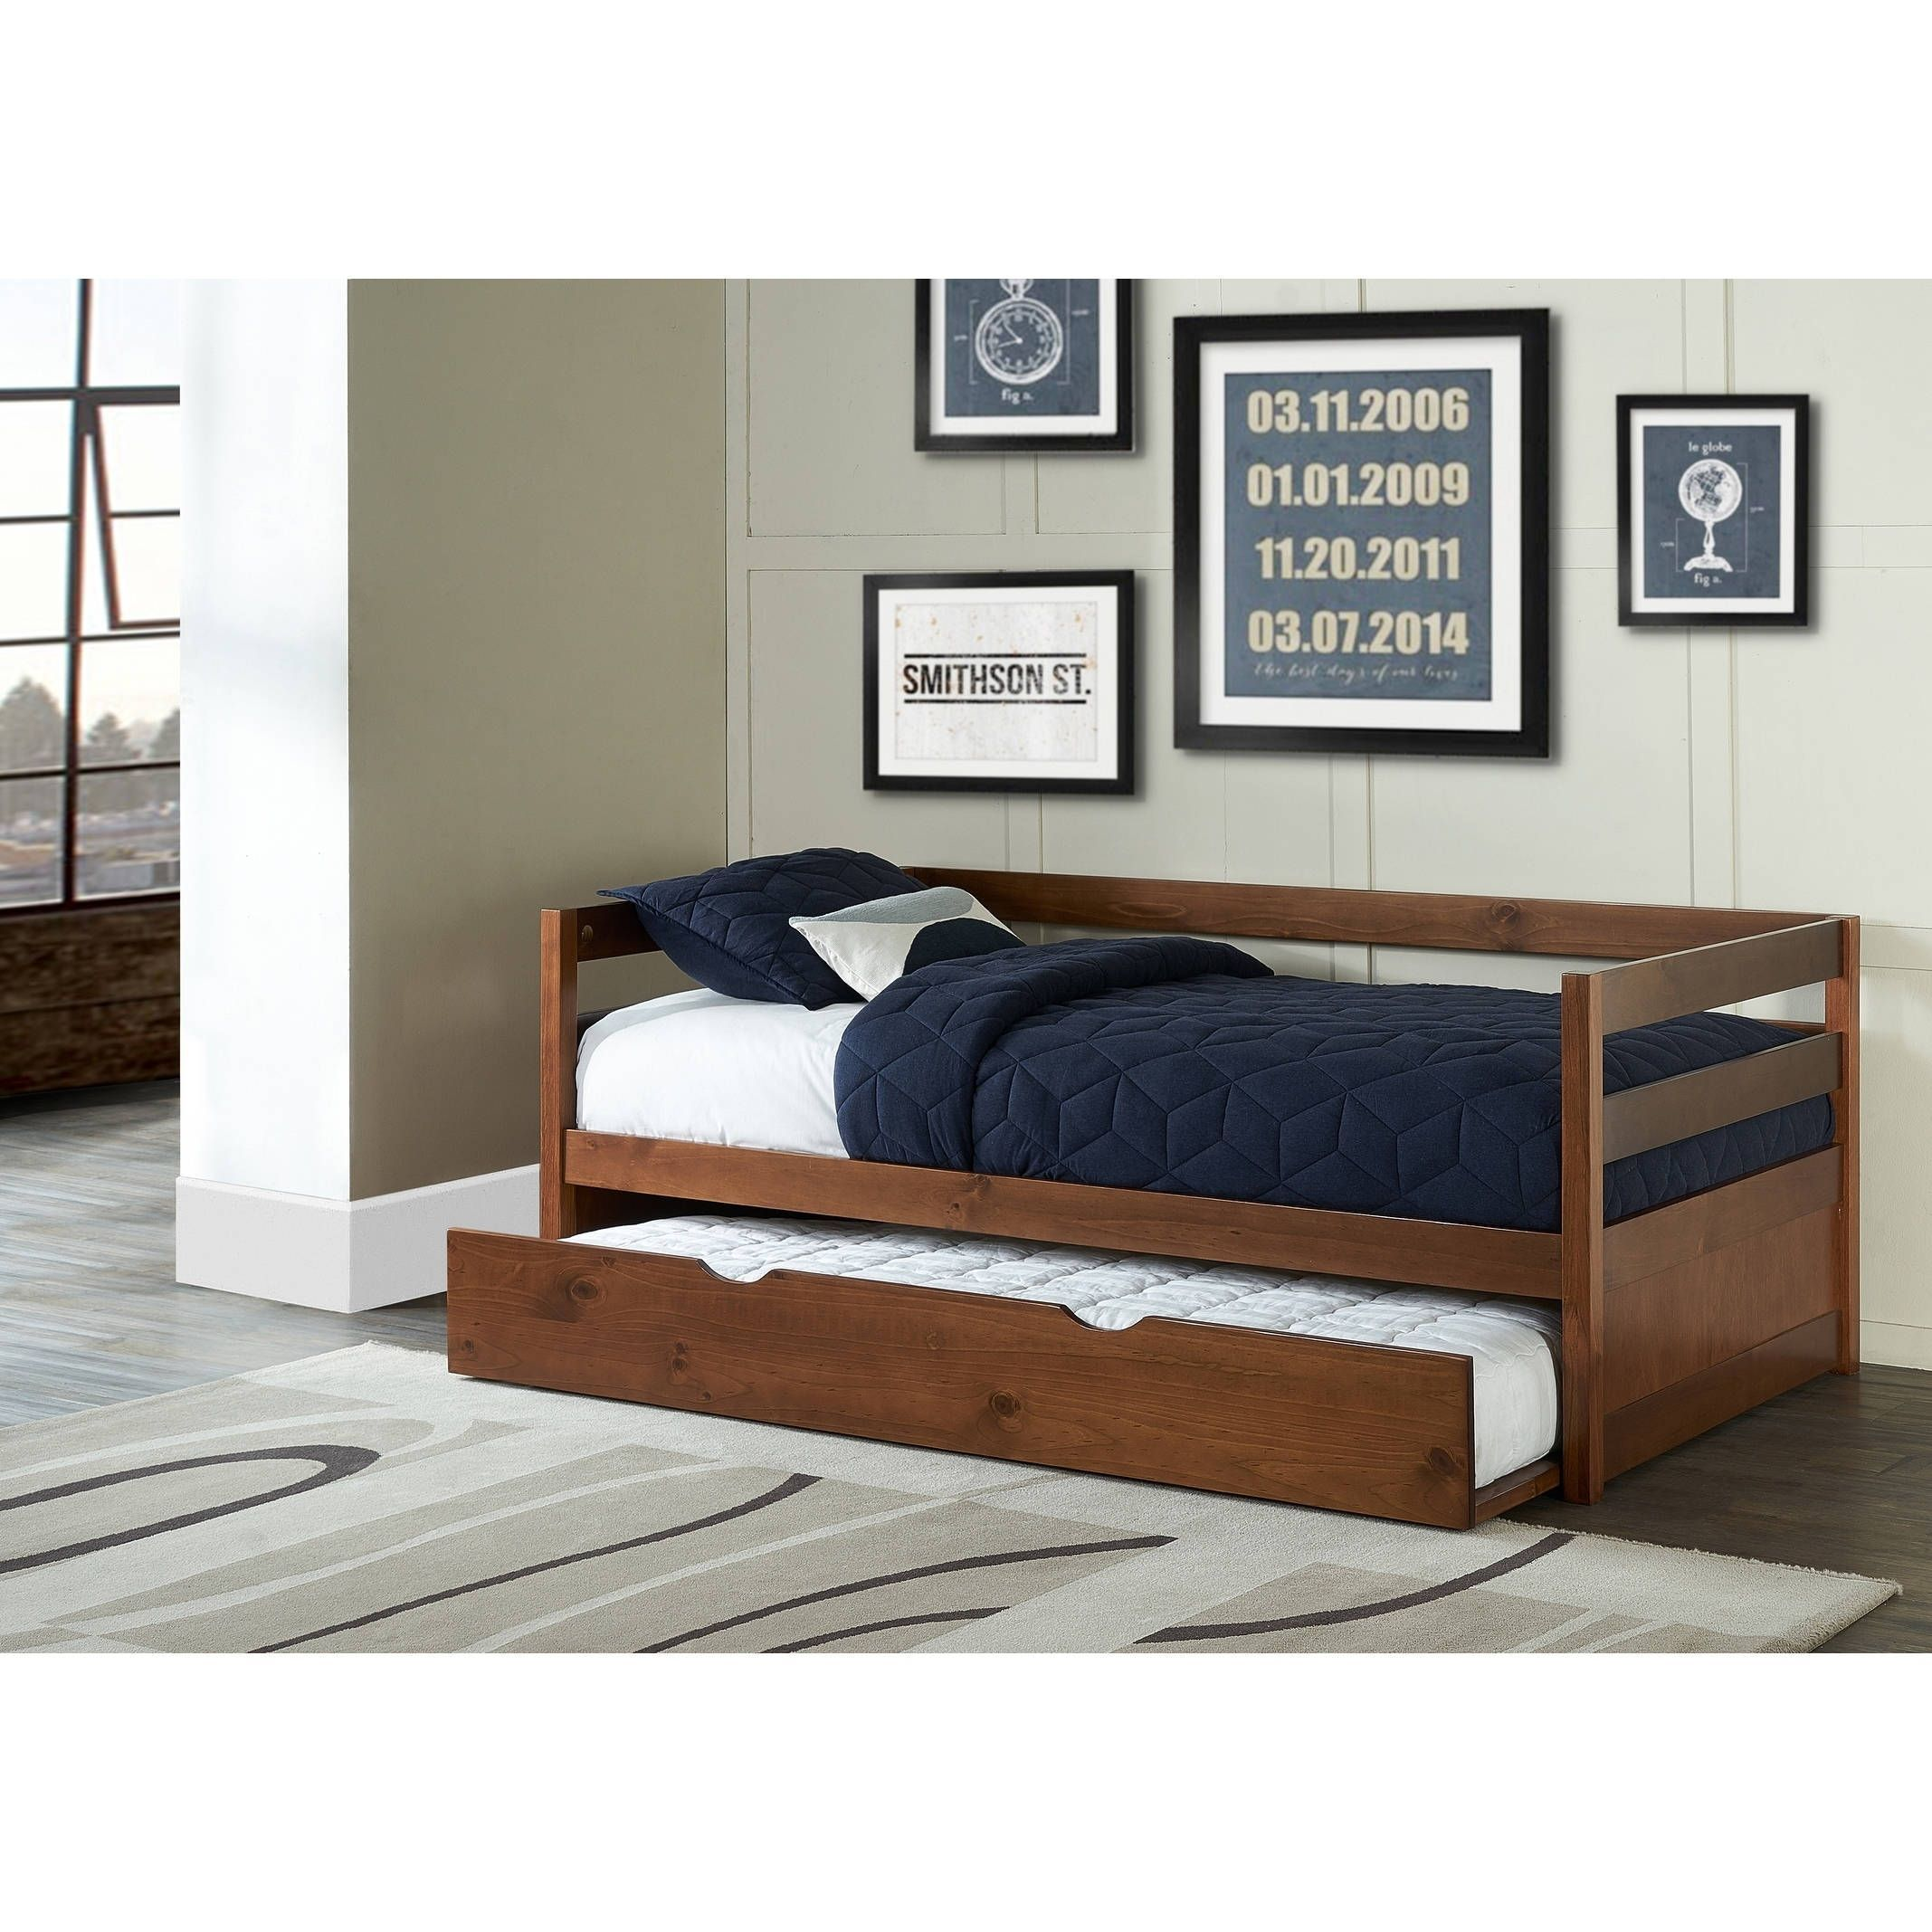 Ne Kids Hillsdale Caspian Daybed With Trundle, Walnut (Daybed), Tan,